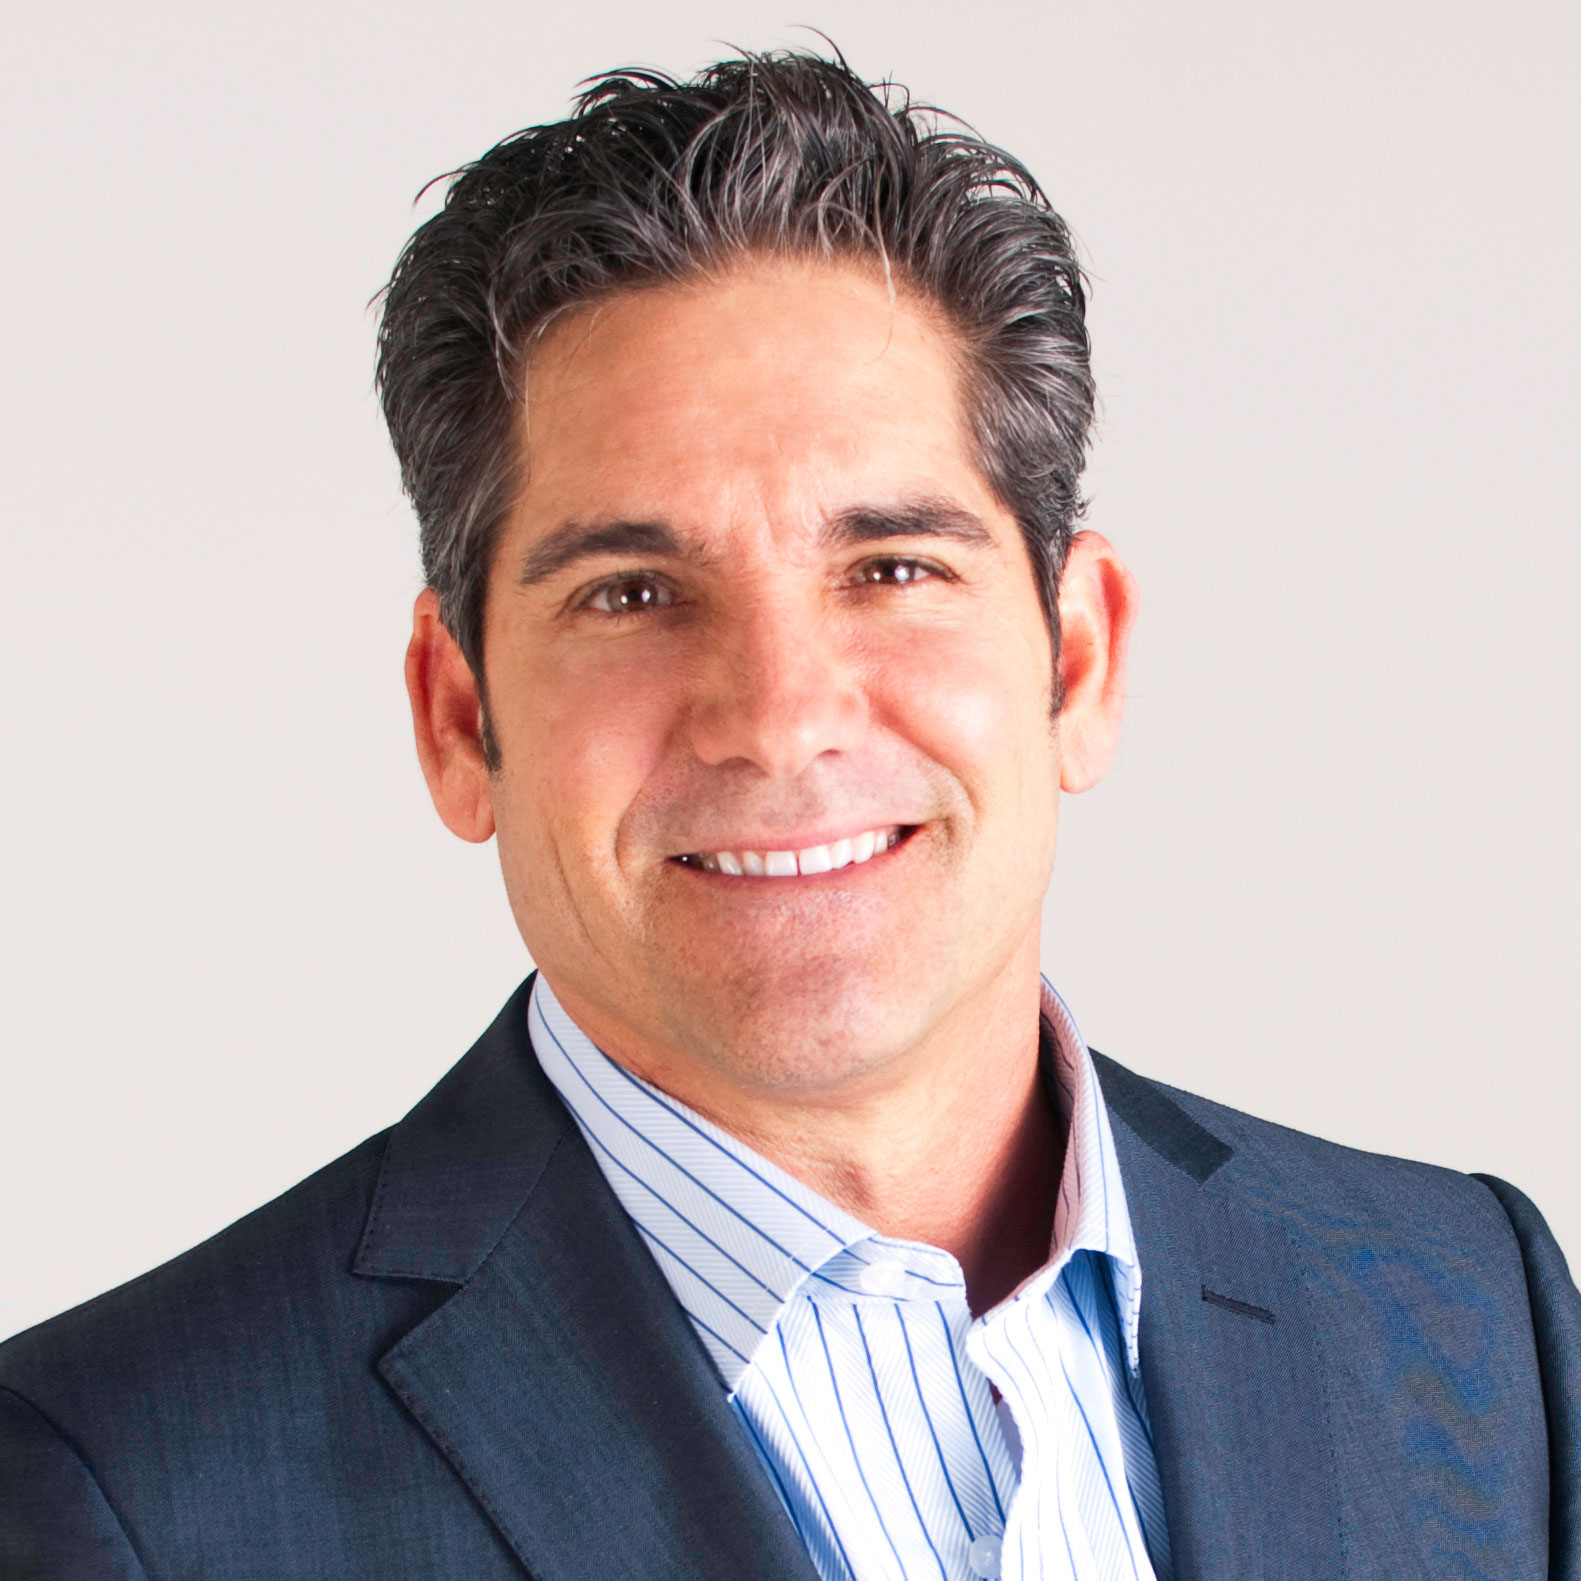 Grant Cardone - Mr. 10X, Best Selling Author